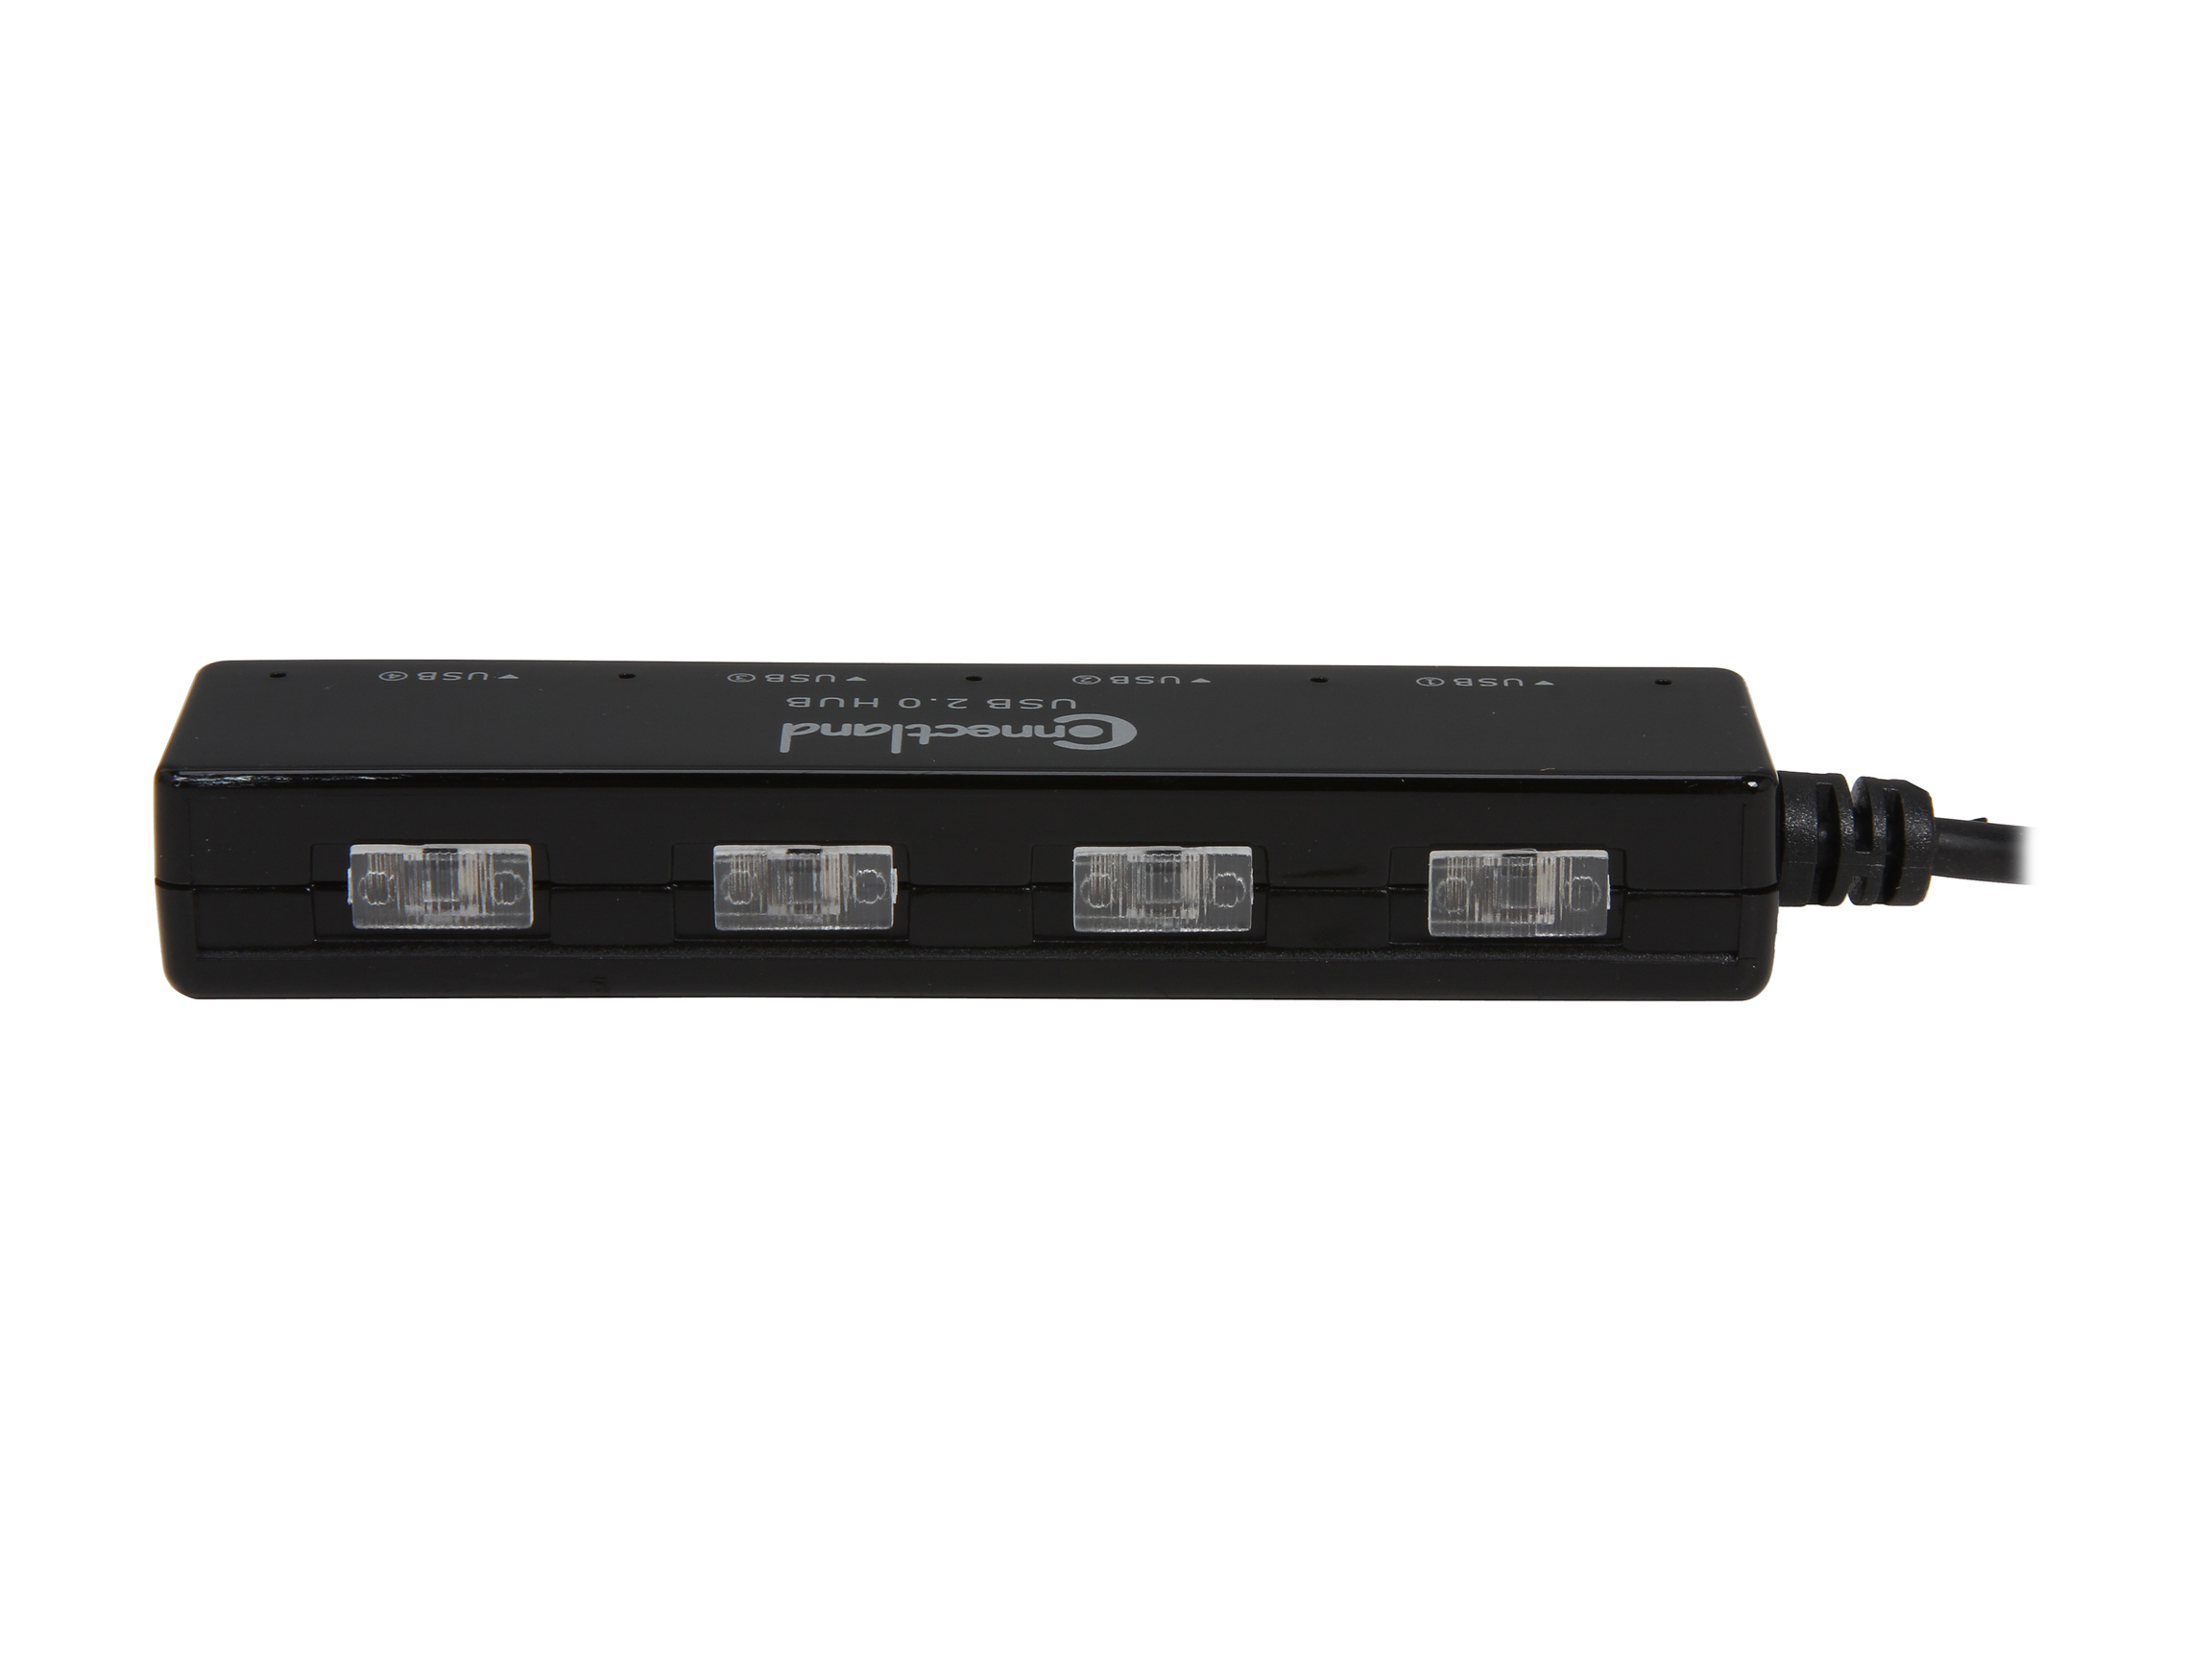 SYBA CL-HUB20132 USB 2.0 4 Ports Mini Hub with Built-in Power On/Off Switch for Each Port